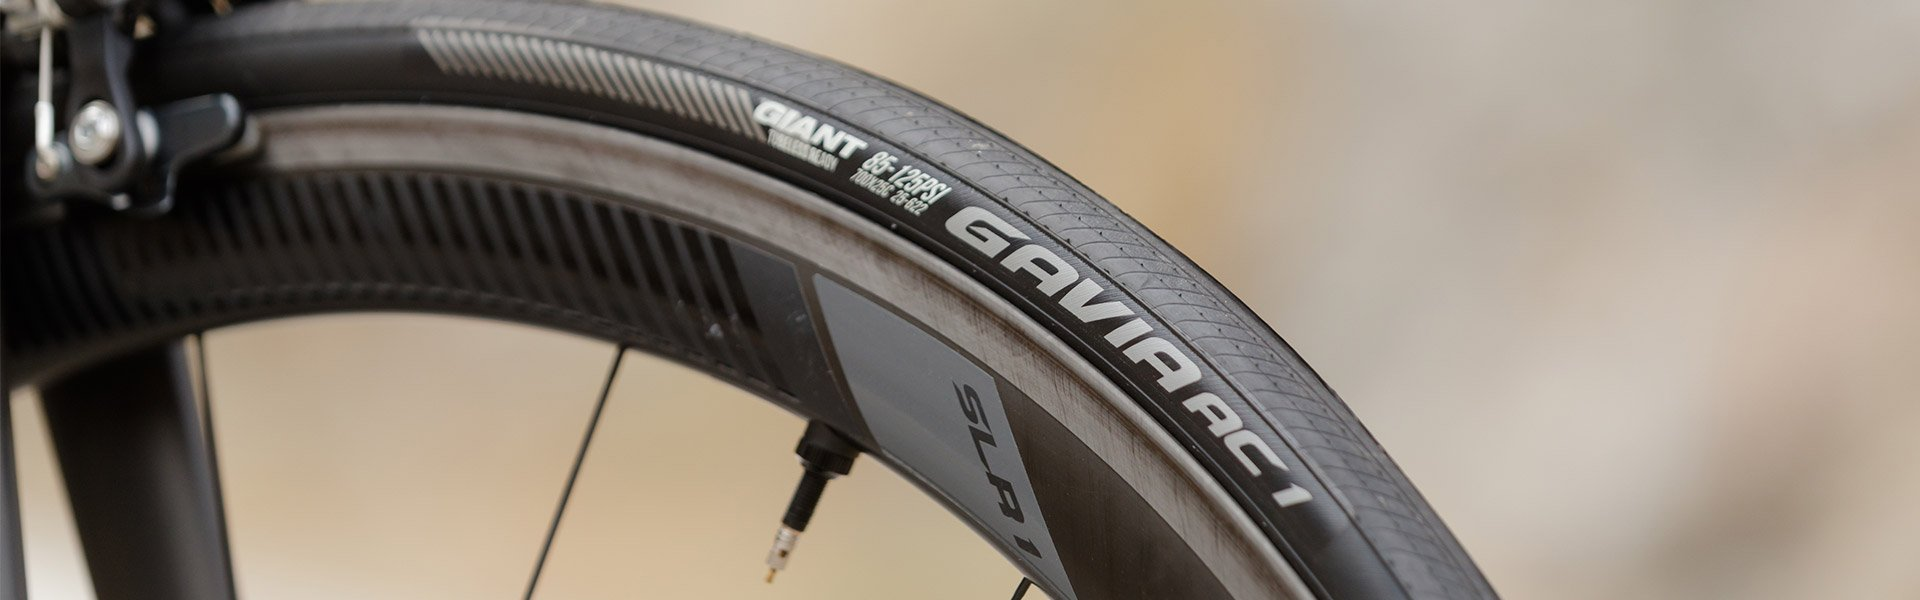 Tubeless tires for road bikes